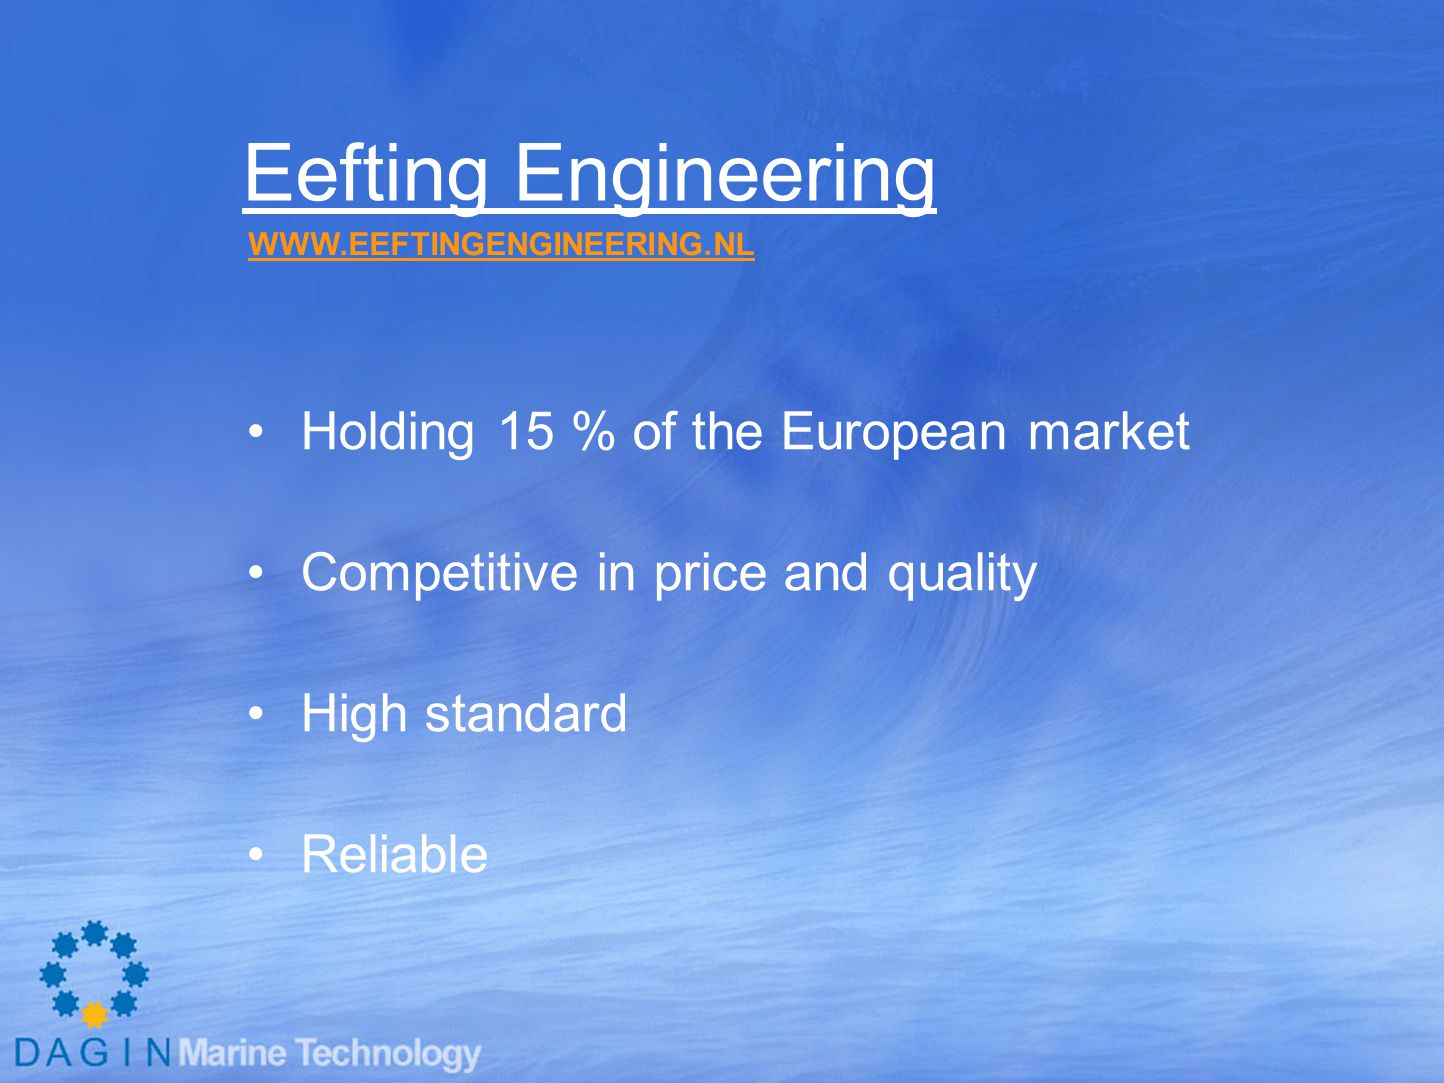 Eefting Engineering Holding 15 % of the European market